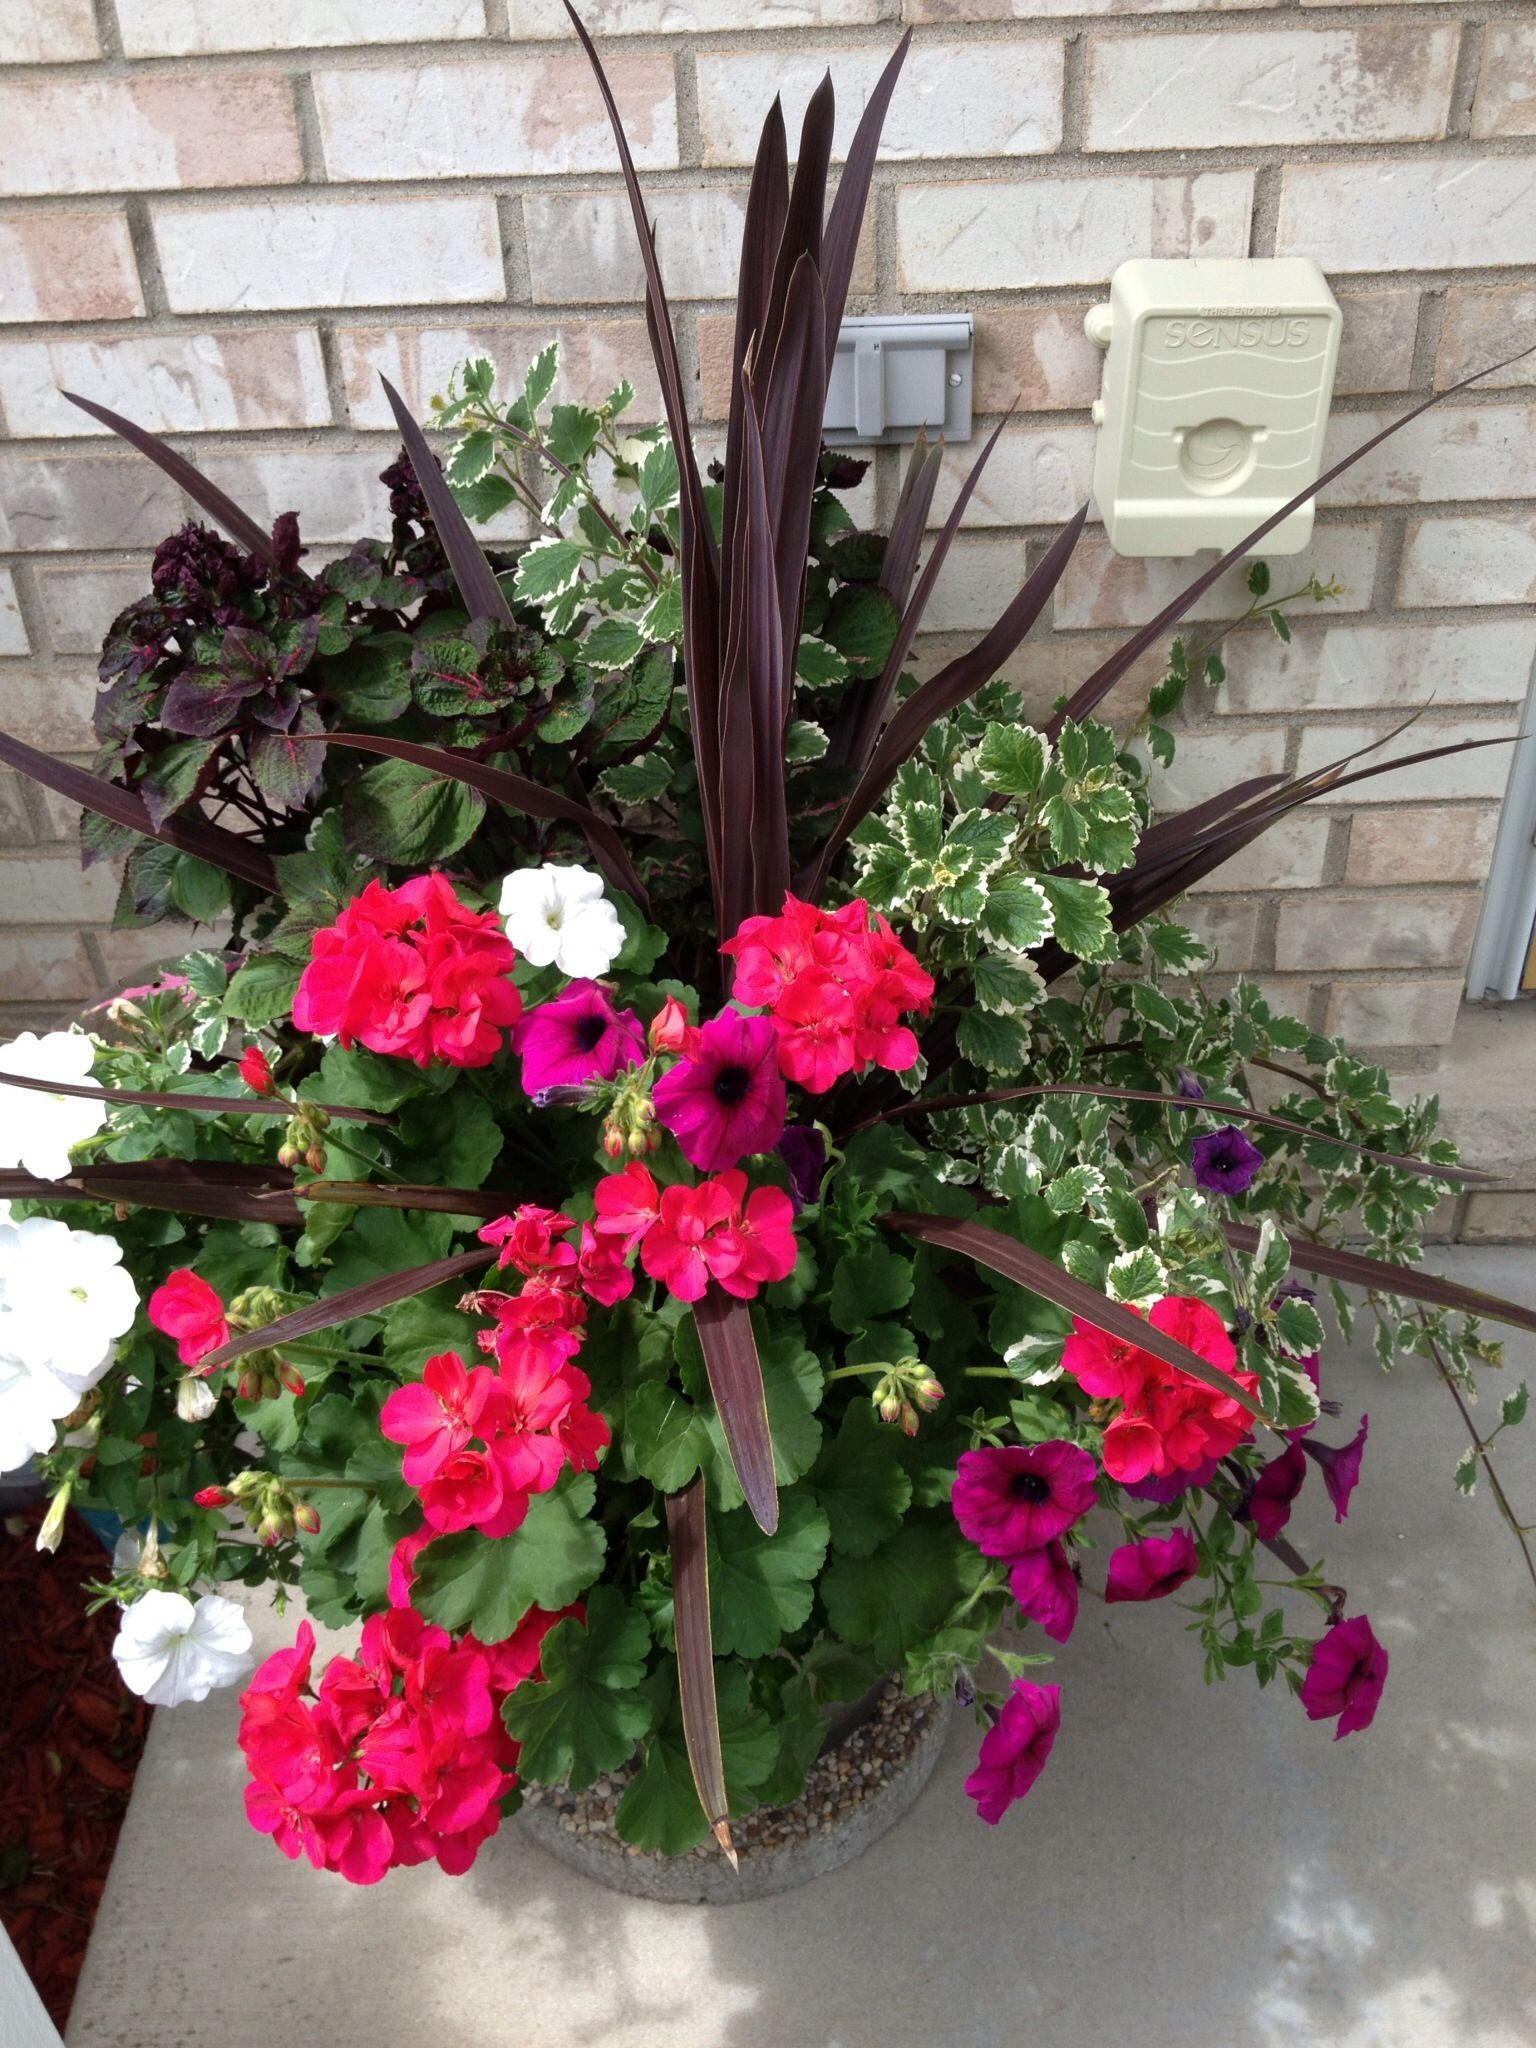 Beautiful Potted Plants I Bought At Costco.